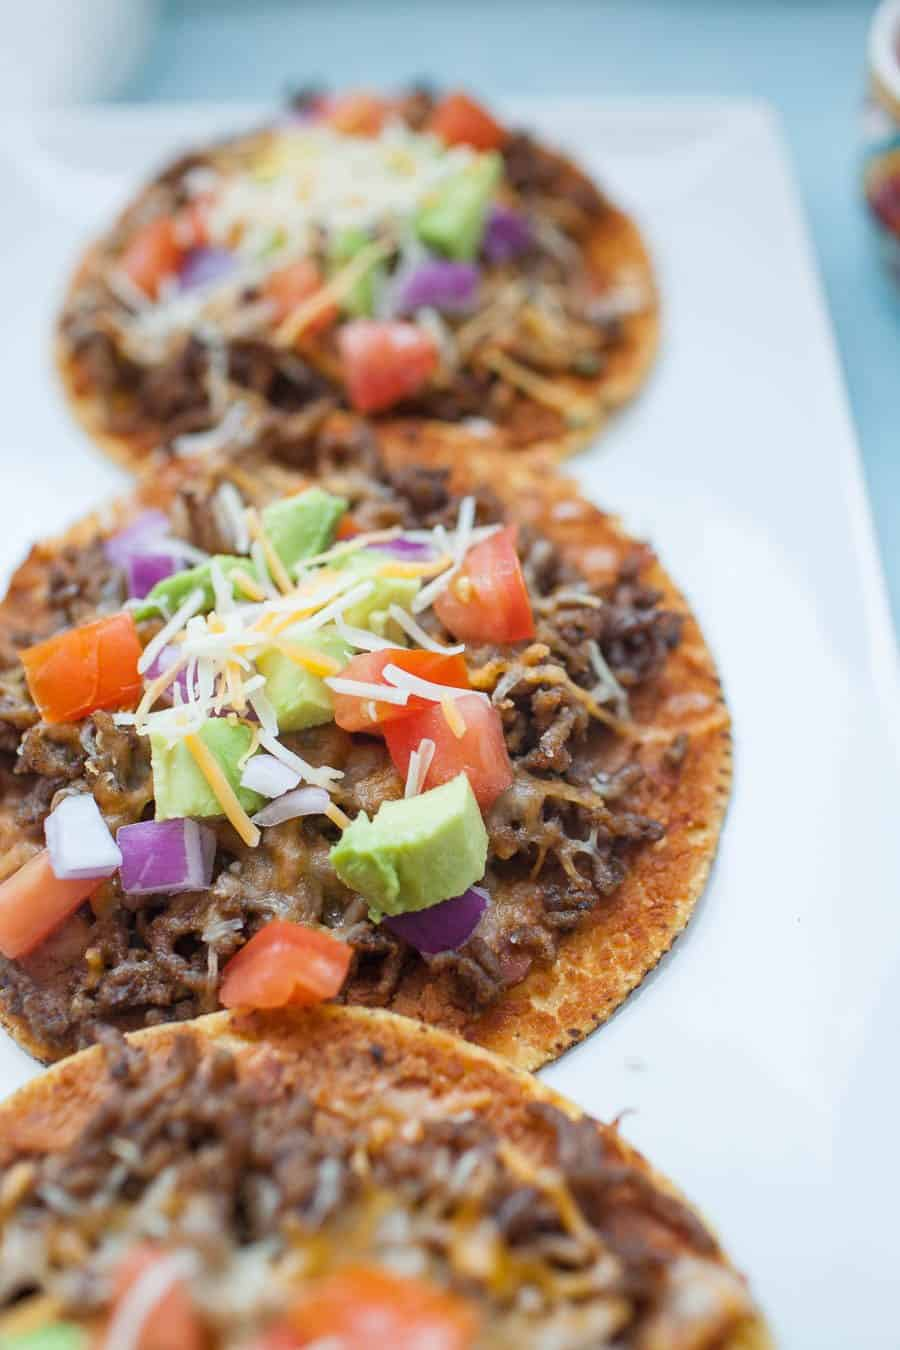 Easy ground beef tostadas are the perfect dinner for busy weeknights! They're quick to make and can be customized a ton of ways to be your perfect flavor combination! Start with a flat, crunchy corn tortilla and add your toppings like beans, ground beef, tomatoes, avocado and cheese for a flavorful, quick dinner.